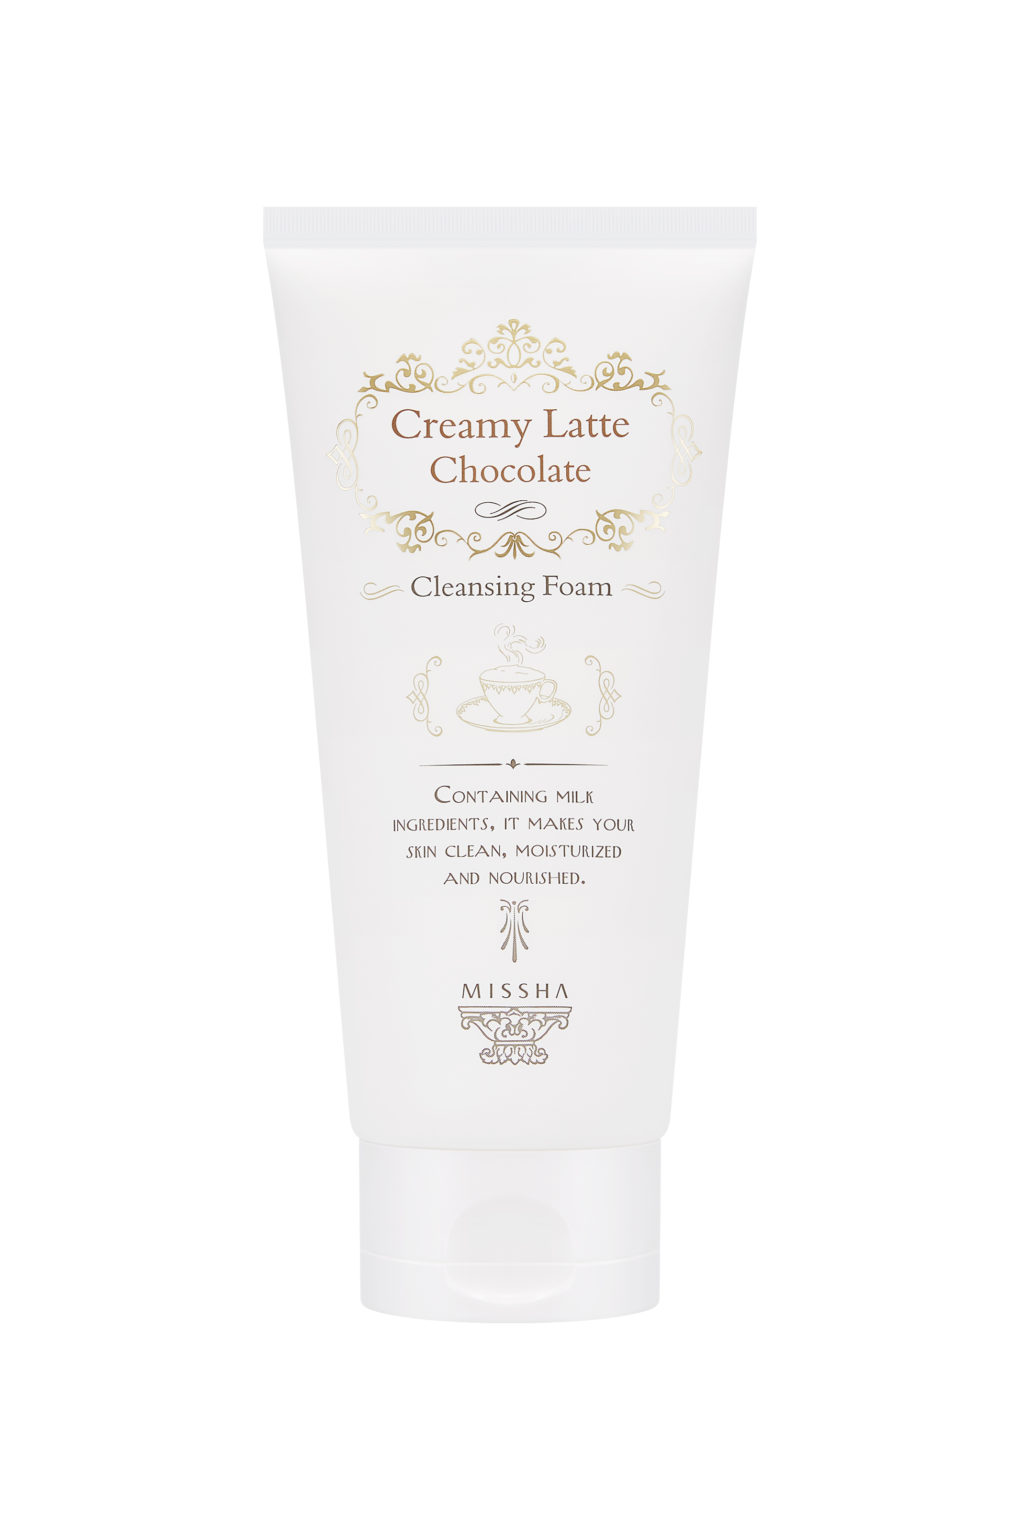 MISSHA Creamy Chocolate Latte Cleansing Foam